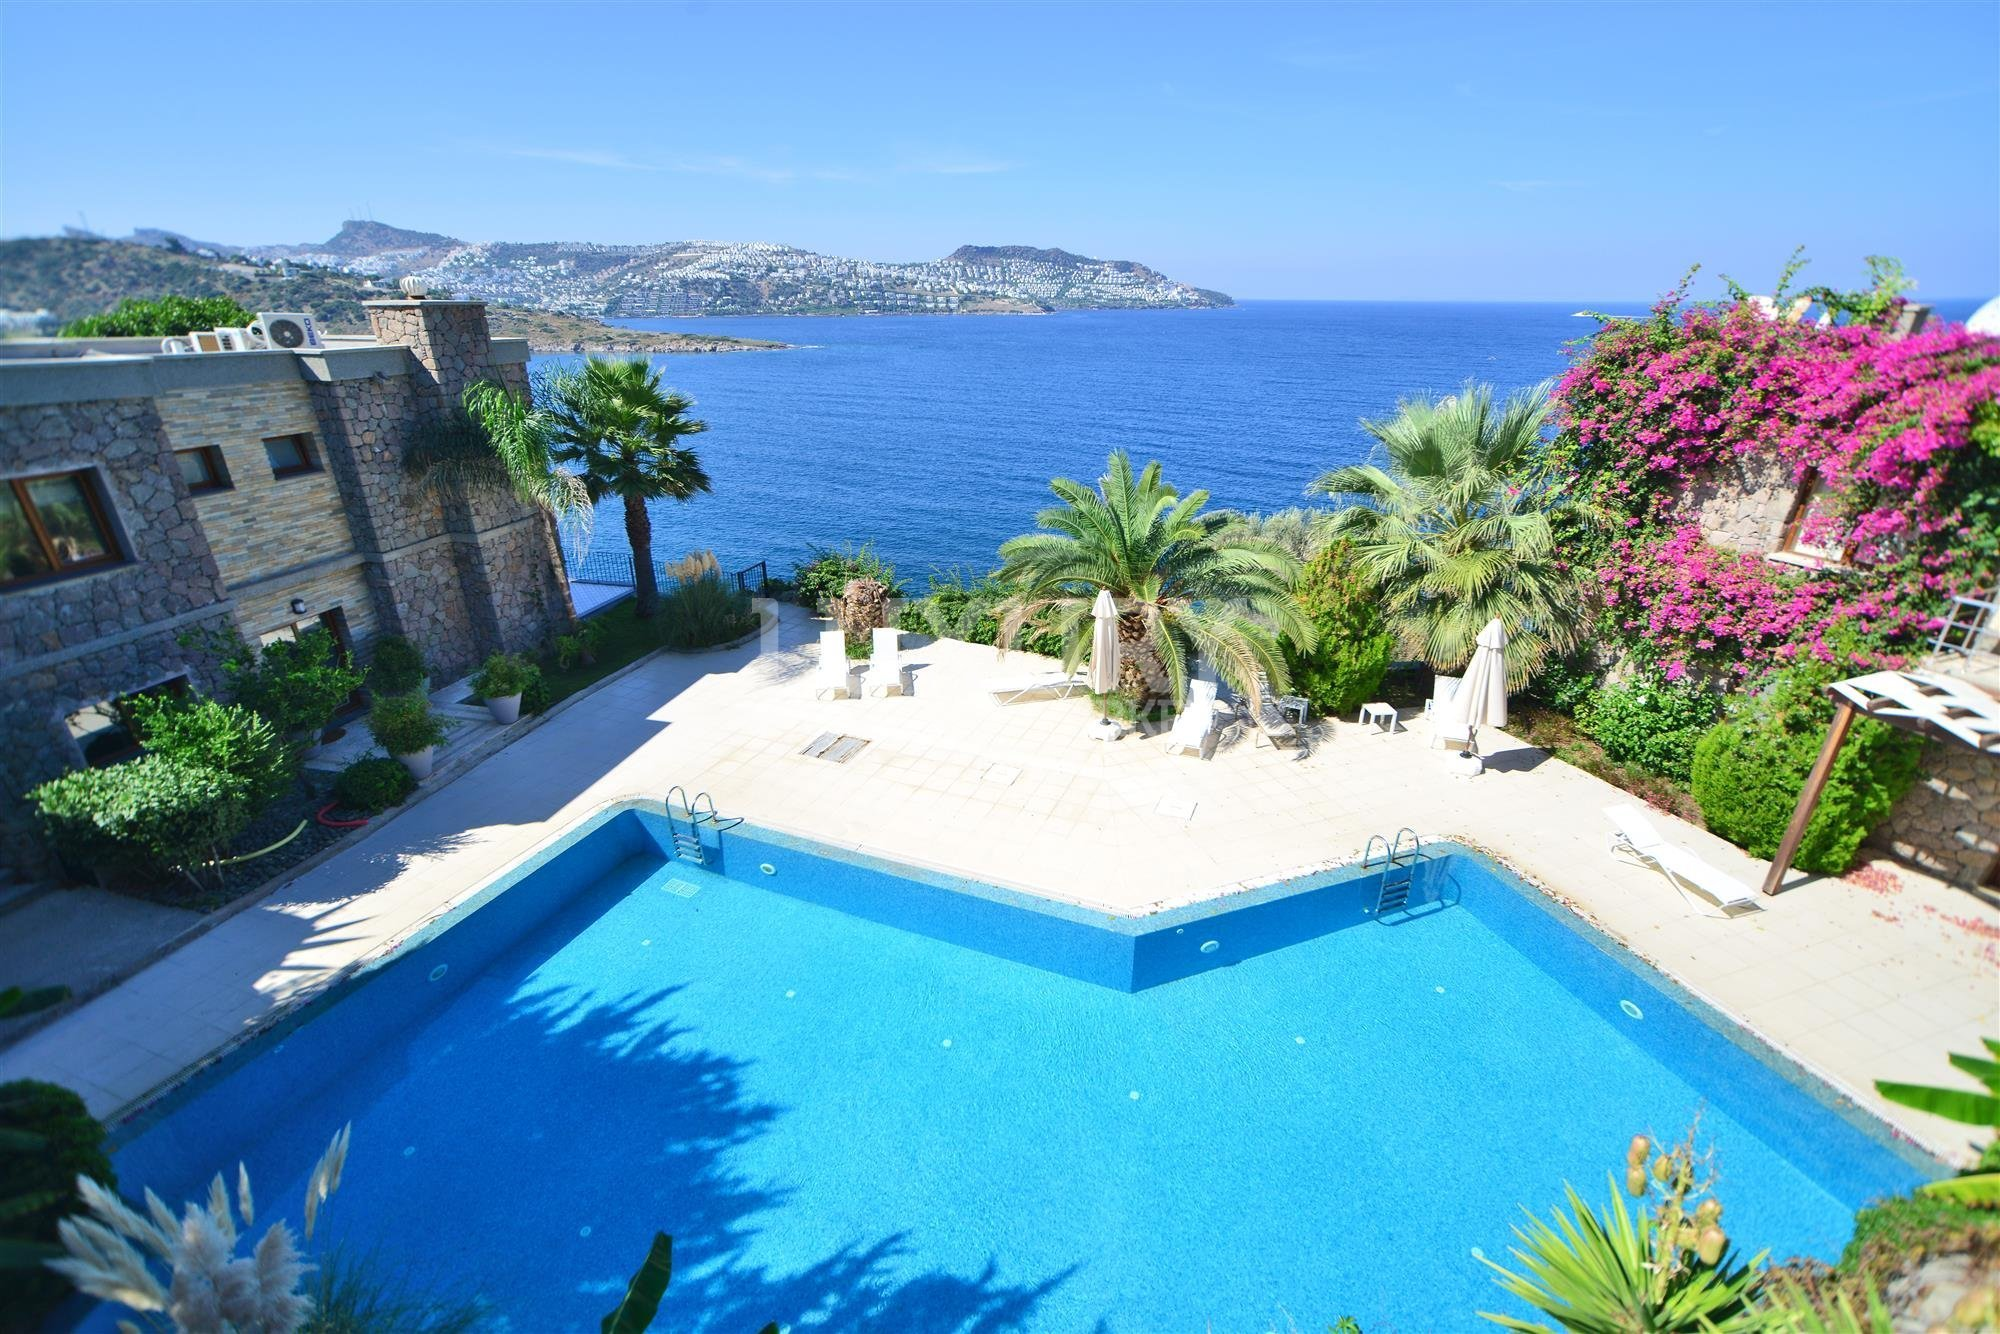 Pool and views from villa